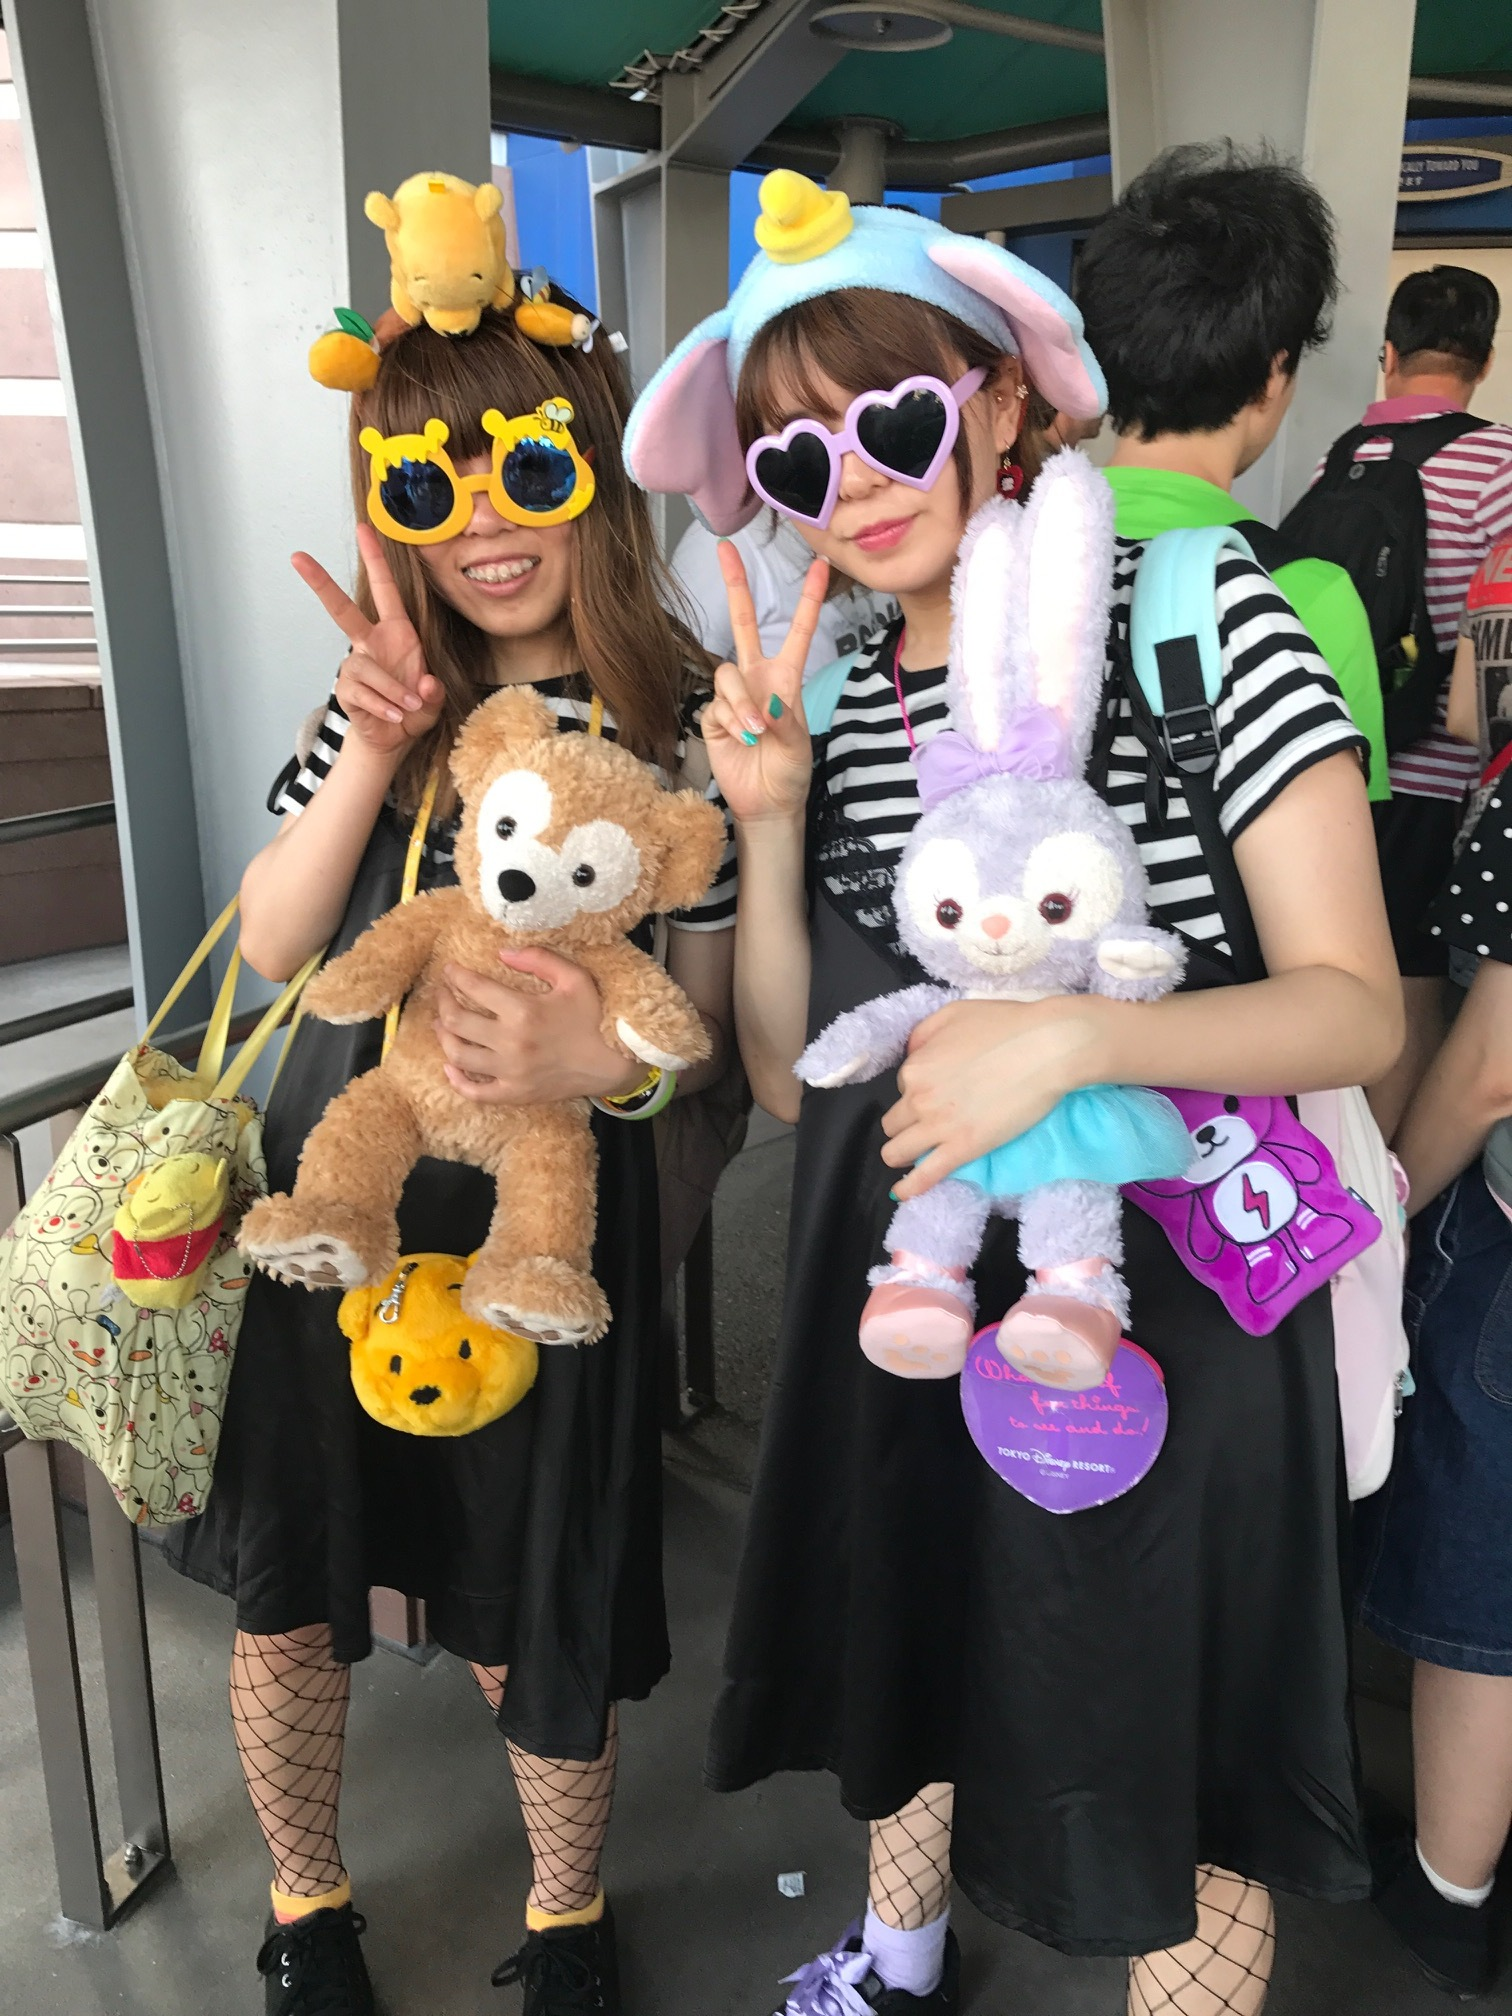 In line at Disney Sea